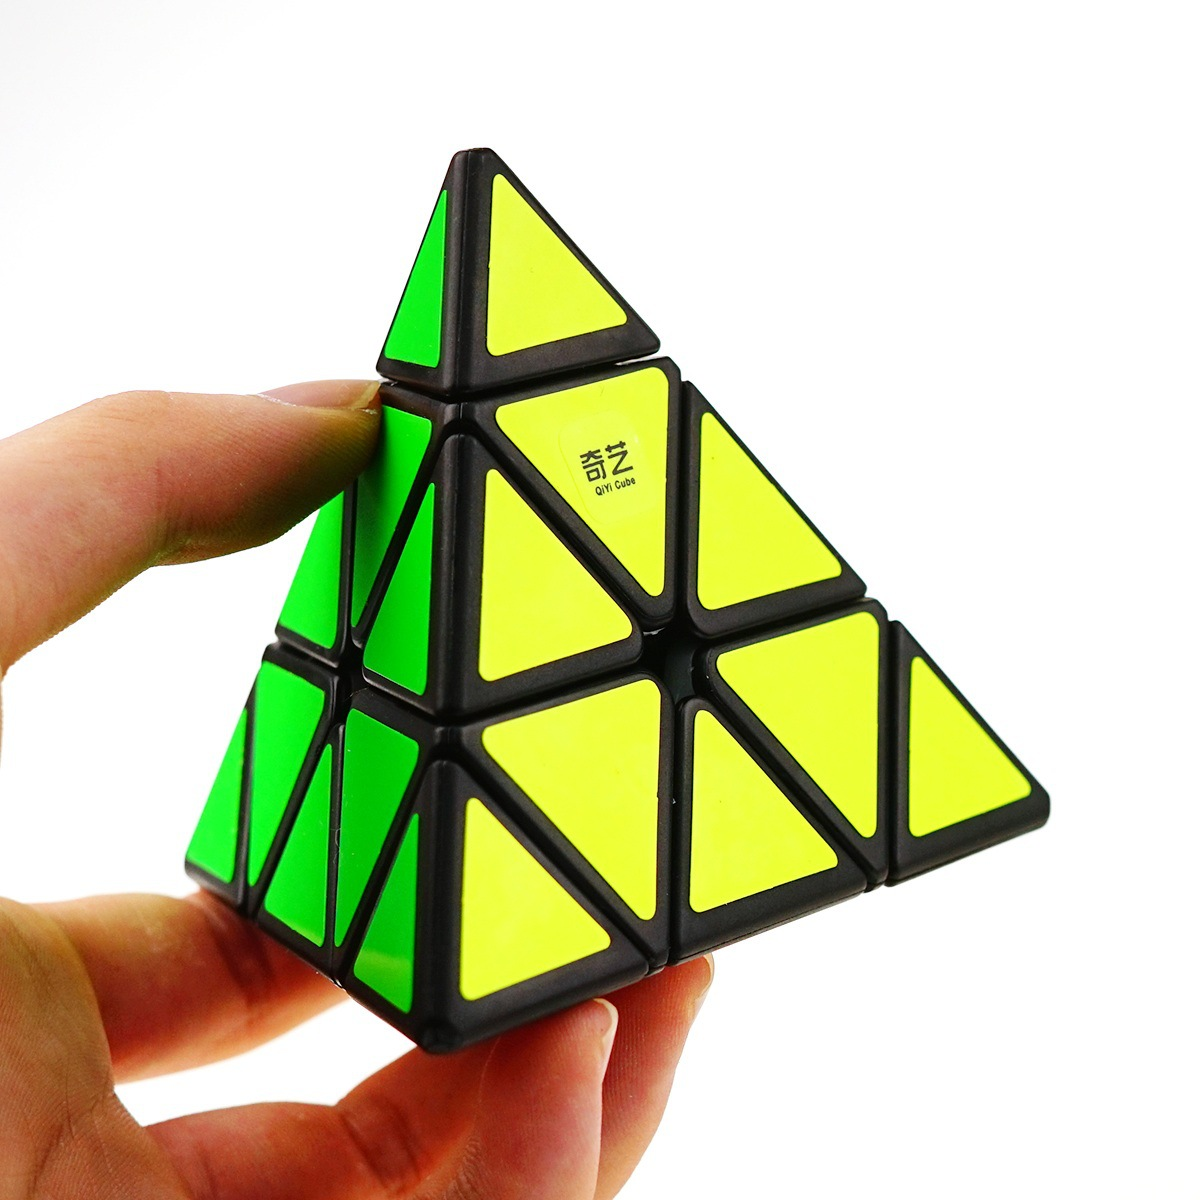 QiYi 3X3X3 Triangle Pyramid Pyraminx Magic Cube Puzzle Speed Cubes Educational Toy Special Toys Gifts Toys For Children Kids hot ocday special toys 12 side megaminx magic cube puzzle speed cubes educational toy new sale